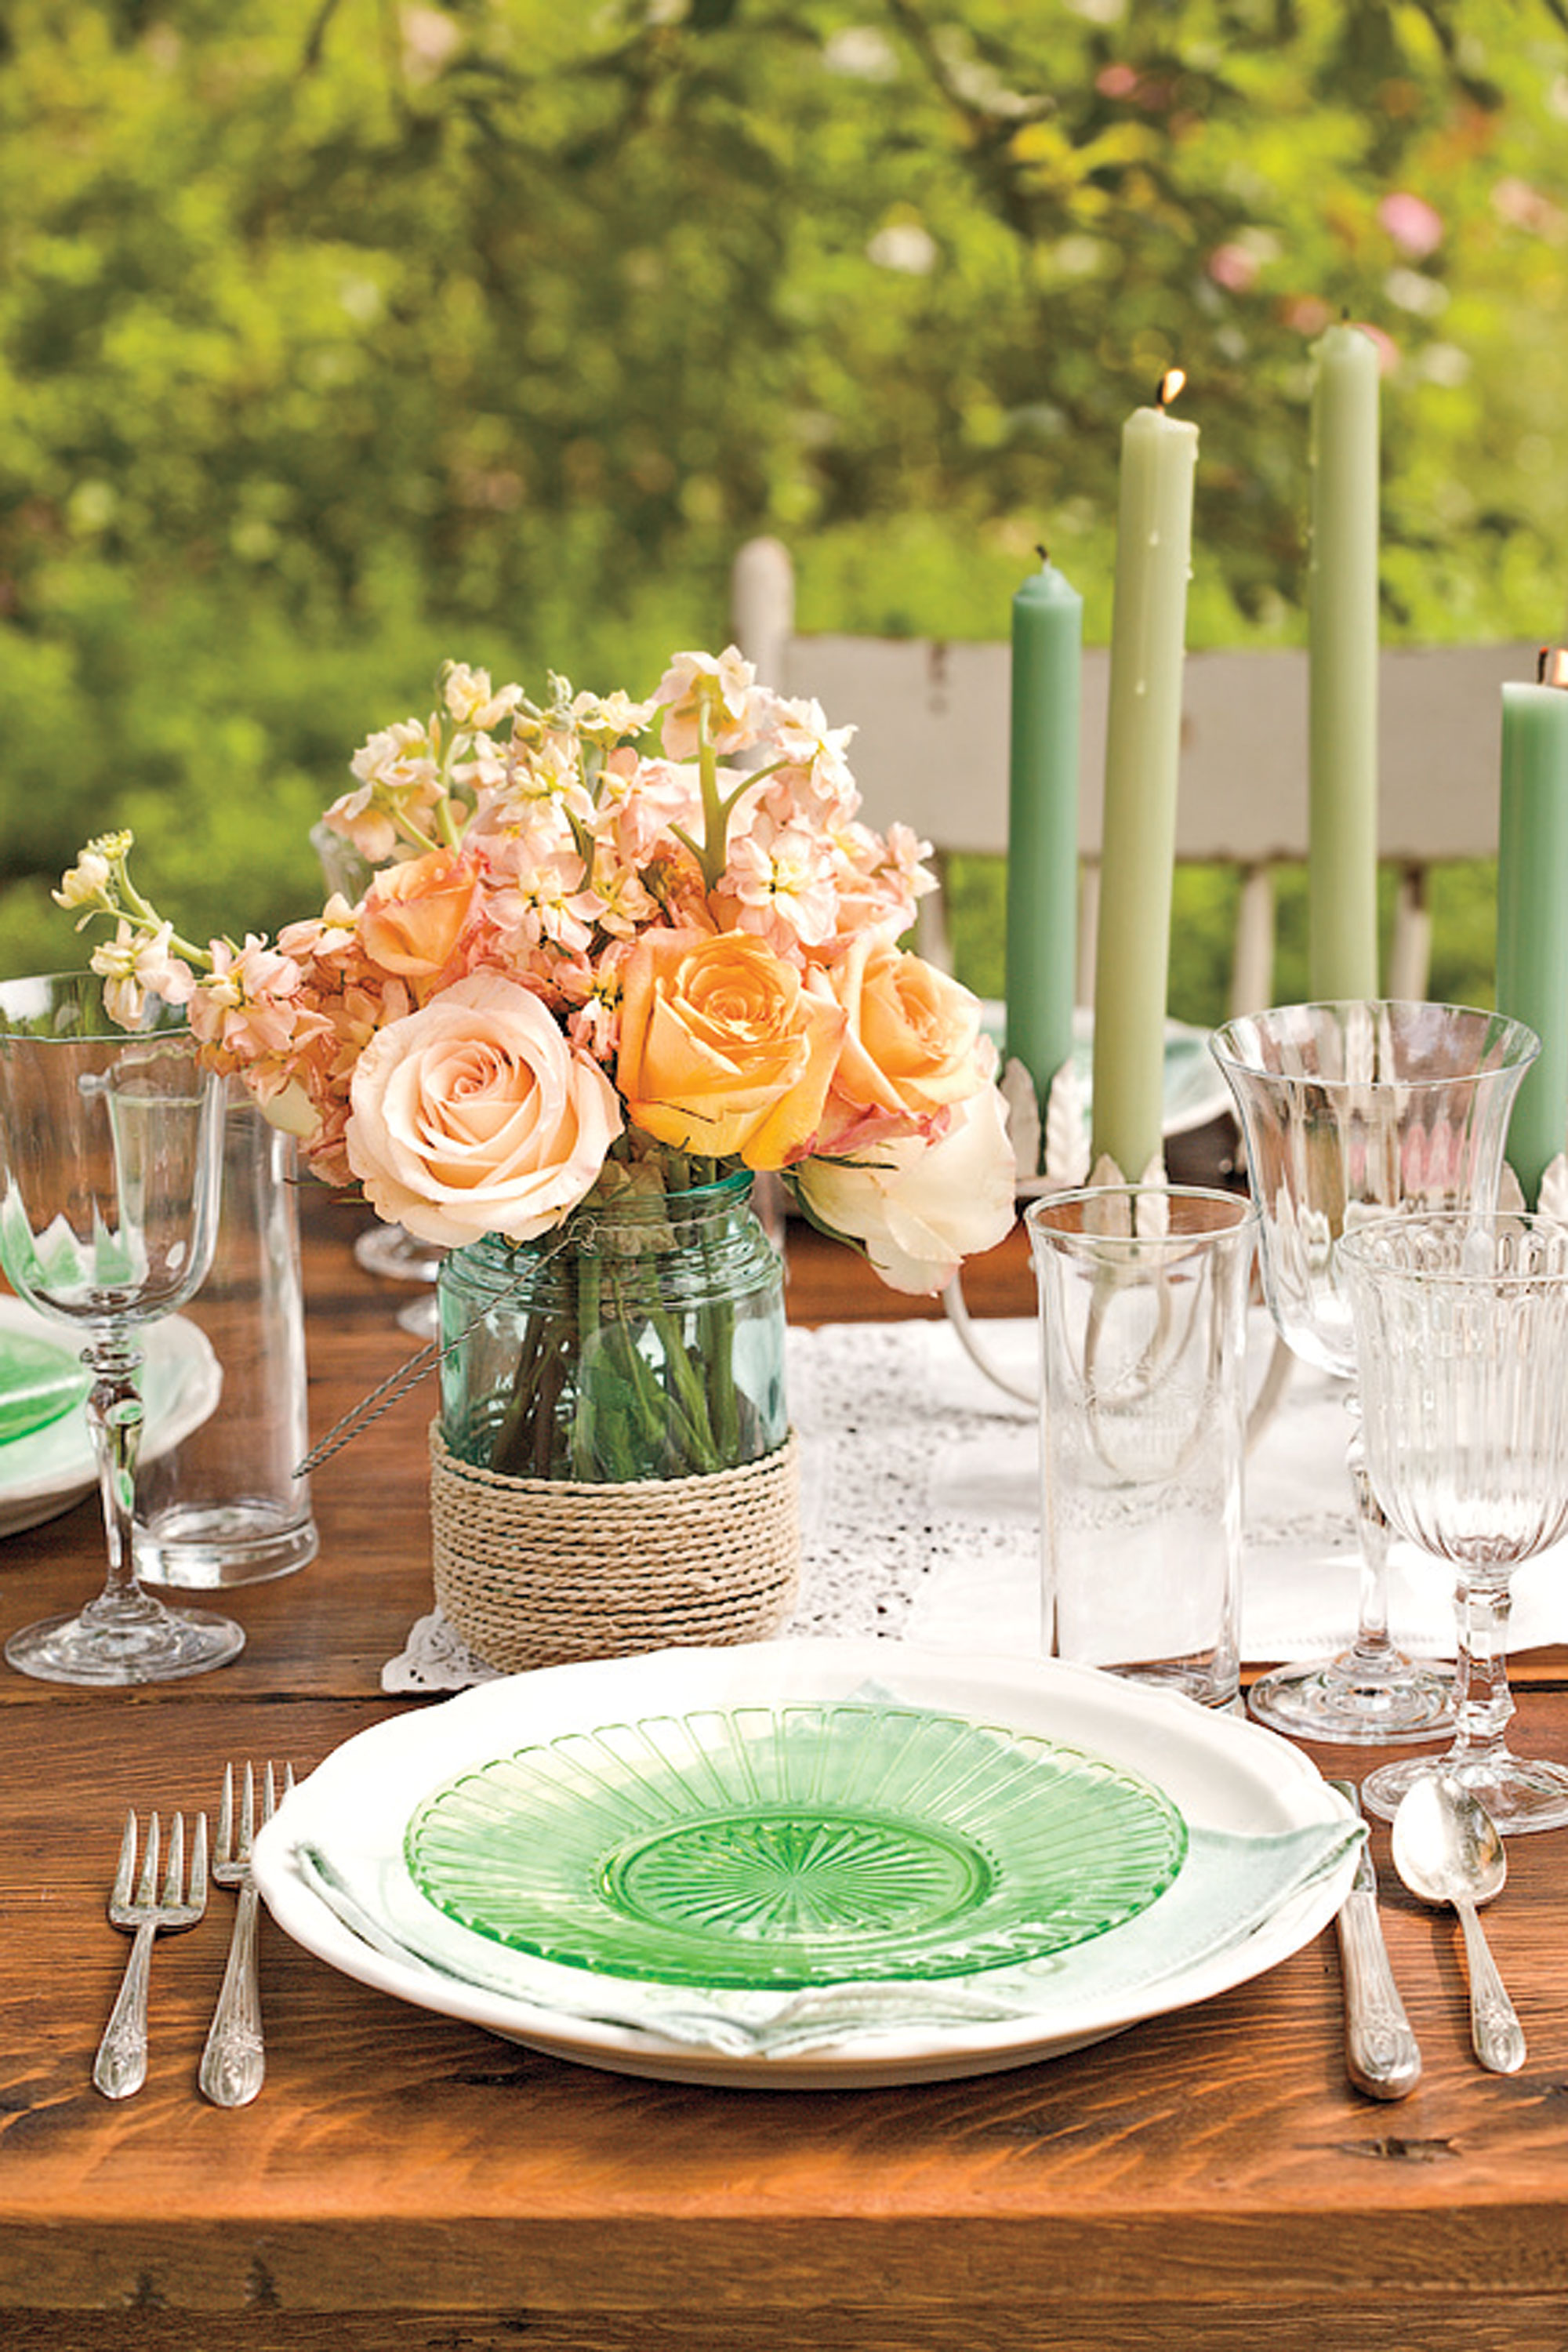 58 Spring Centerpieces And Table Decorations